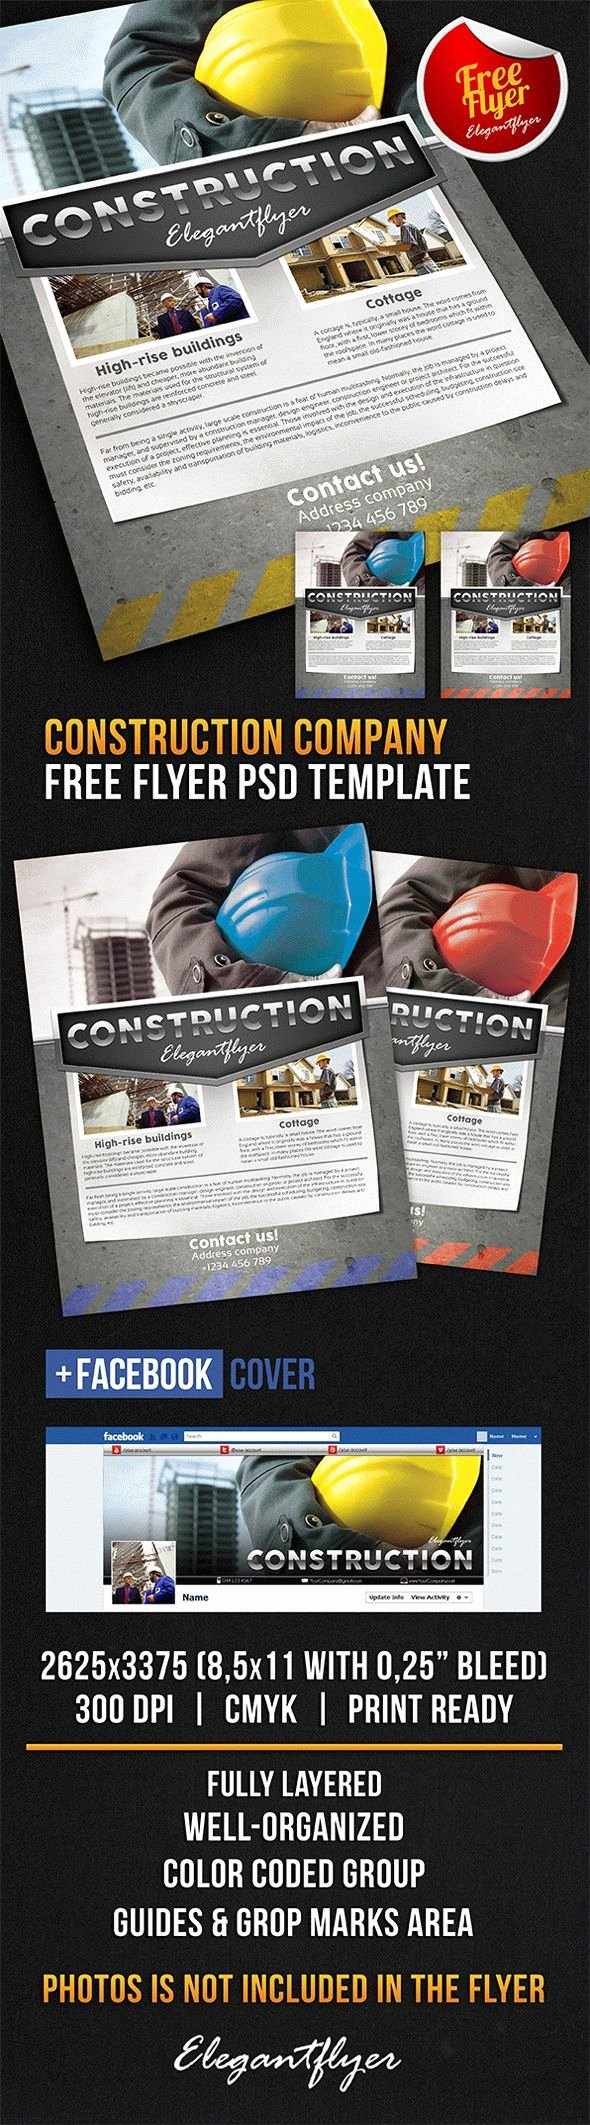 Construction Pany Free Flyer Psd Template